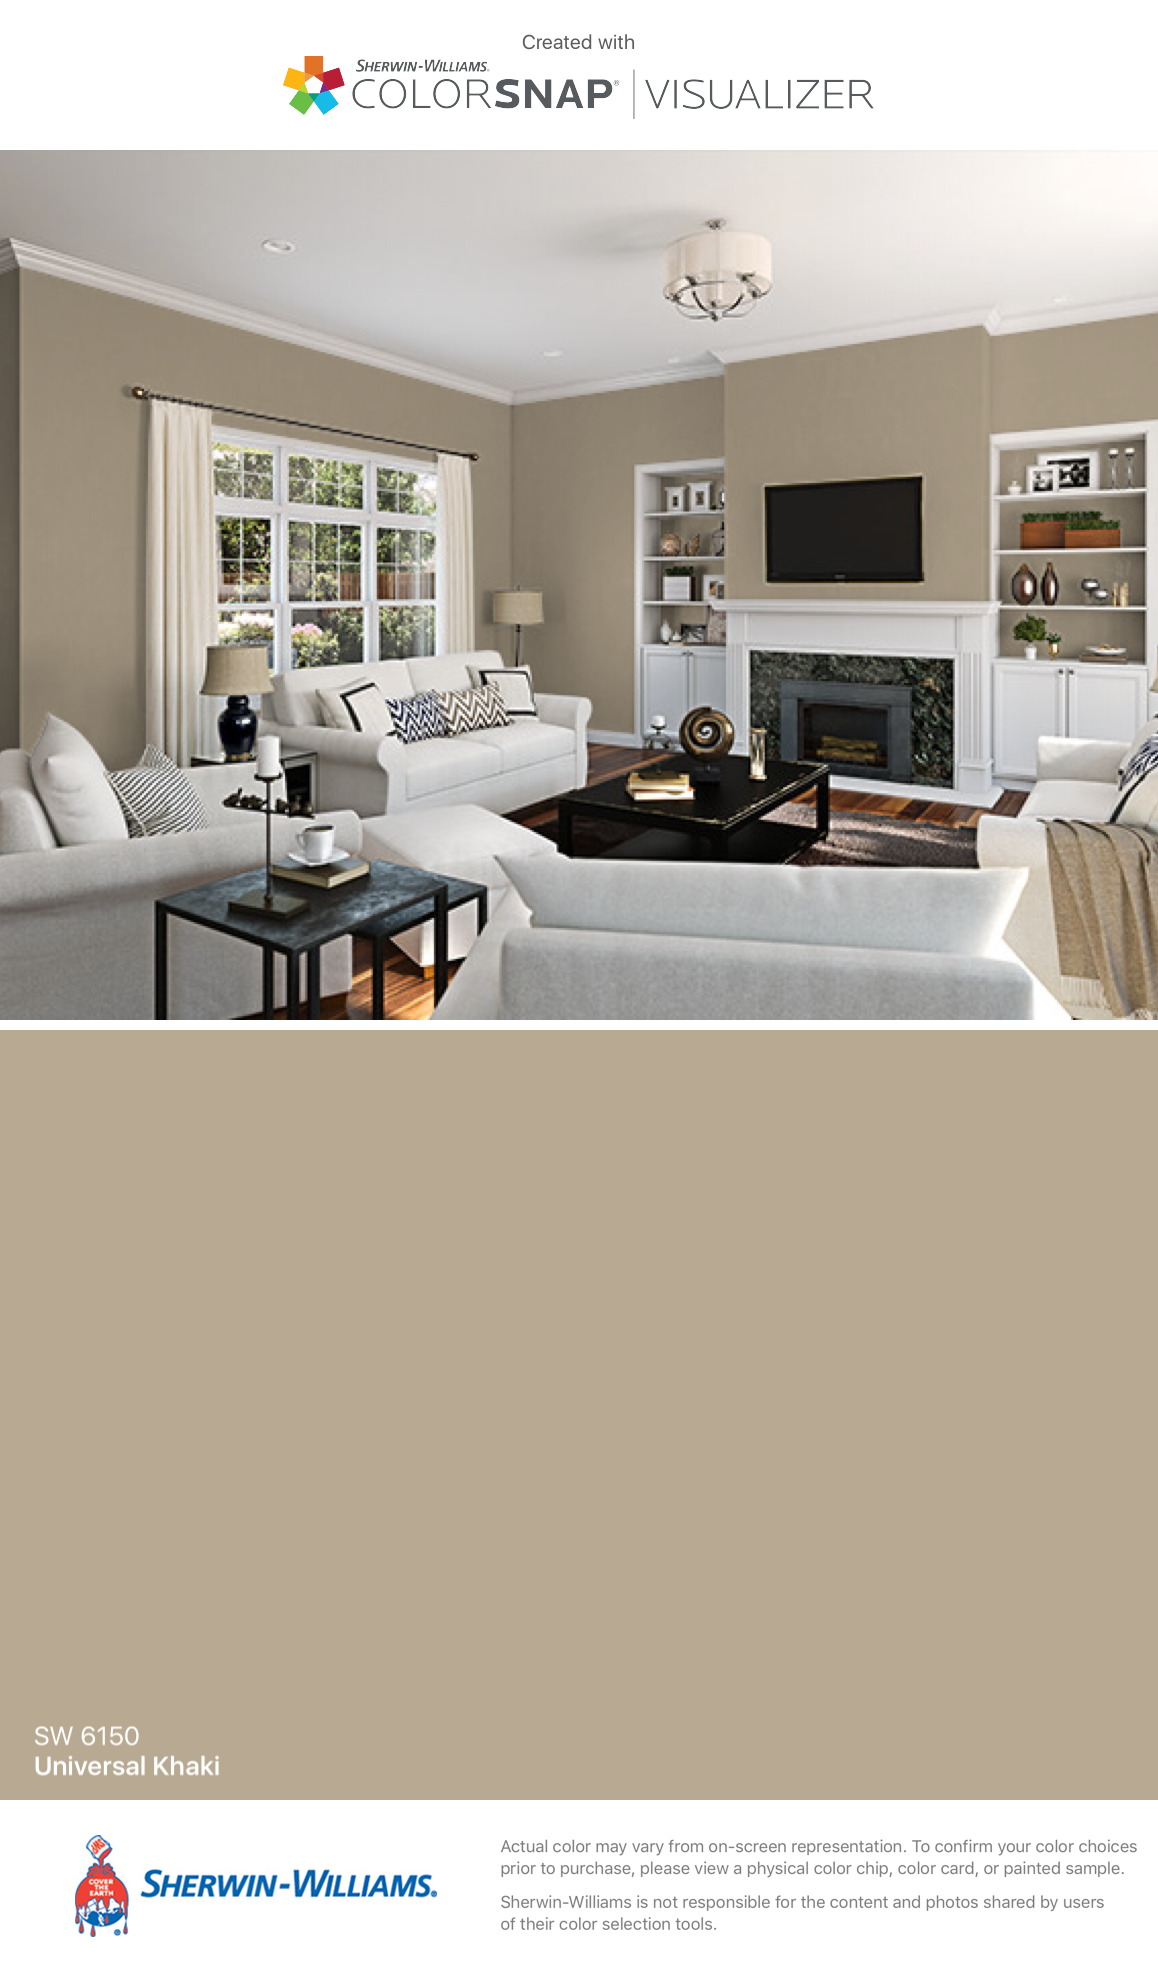 I Found This Color With Colorsnap Visualizer For Iphone By Sherwin Williams Universal Khaki Sw 6150